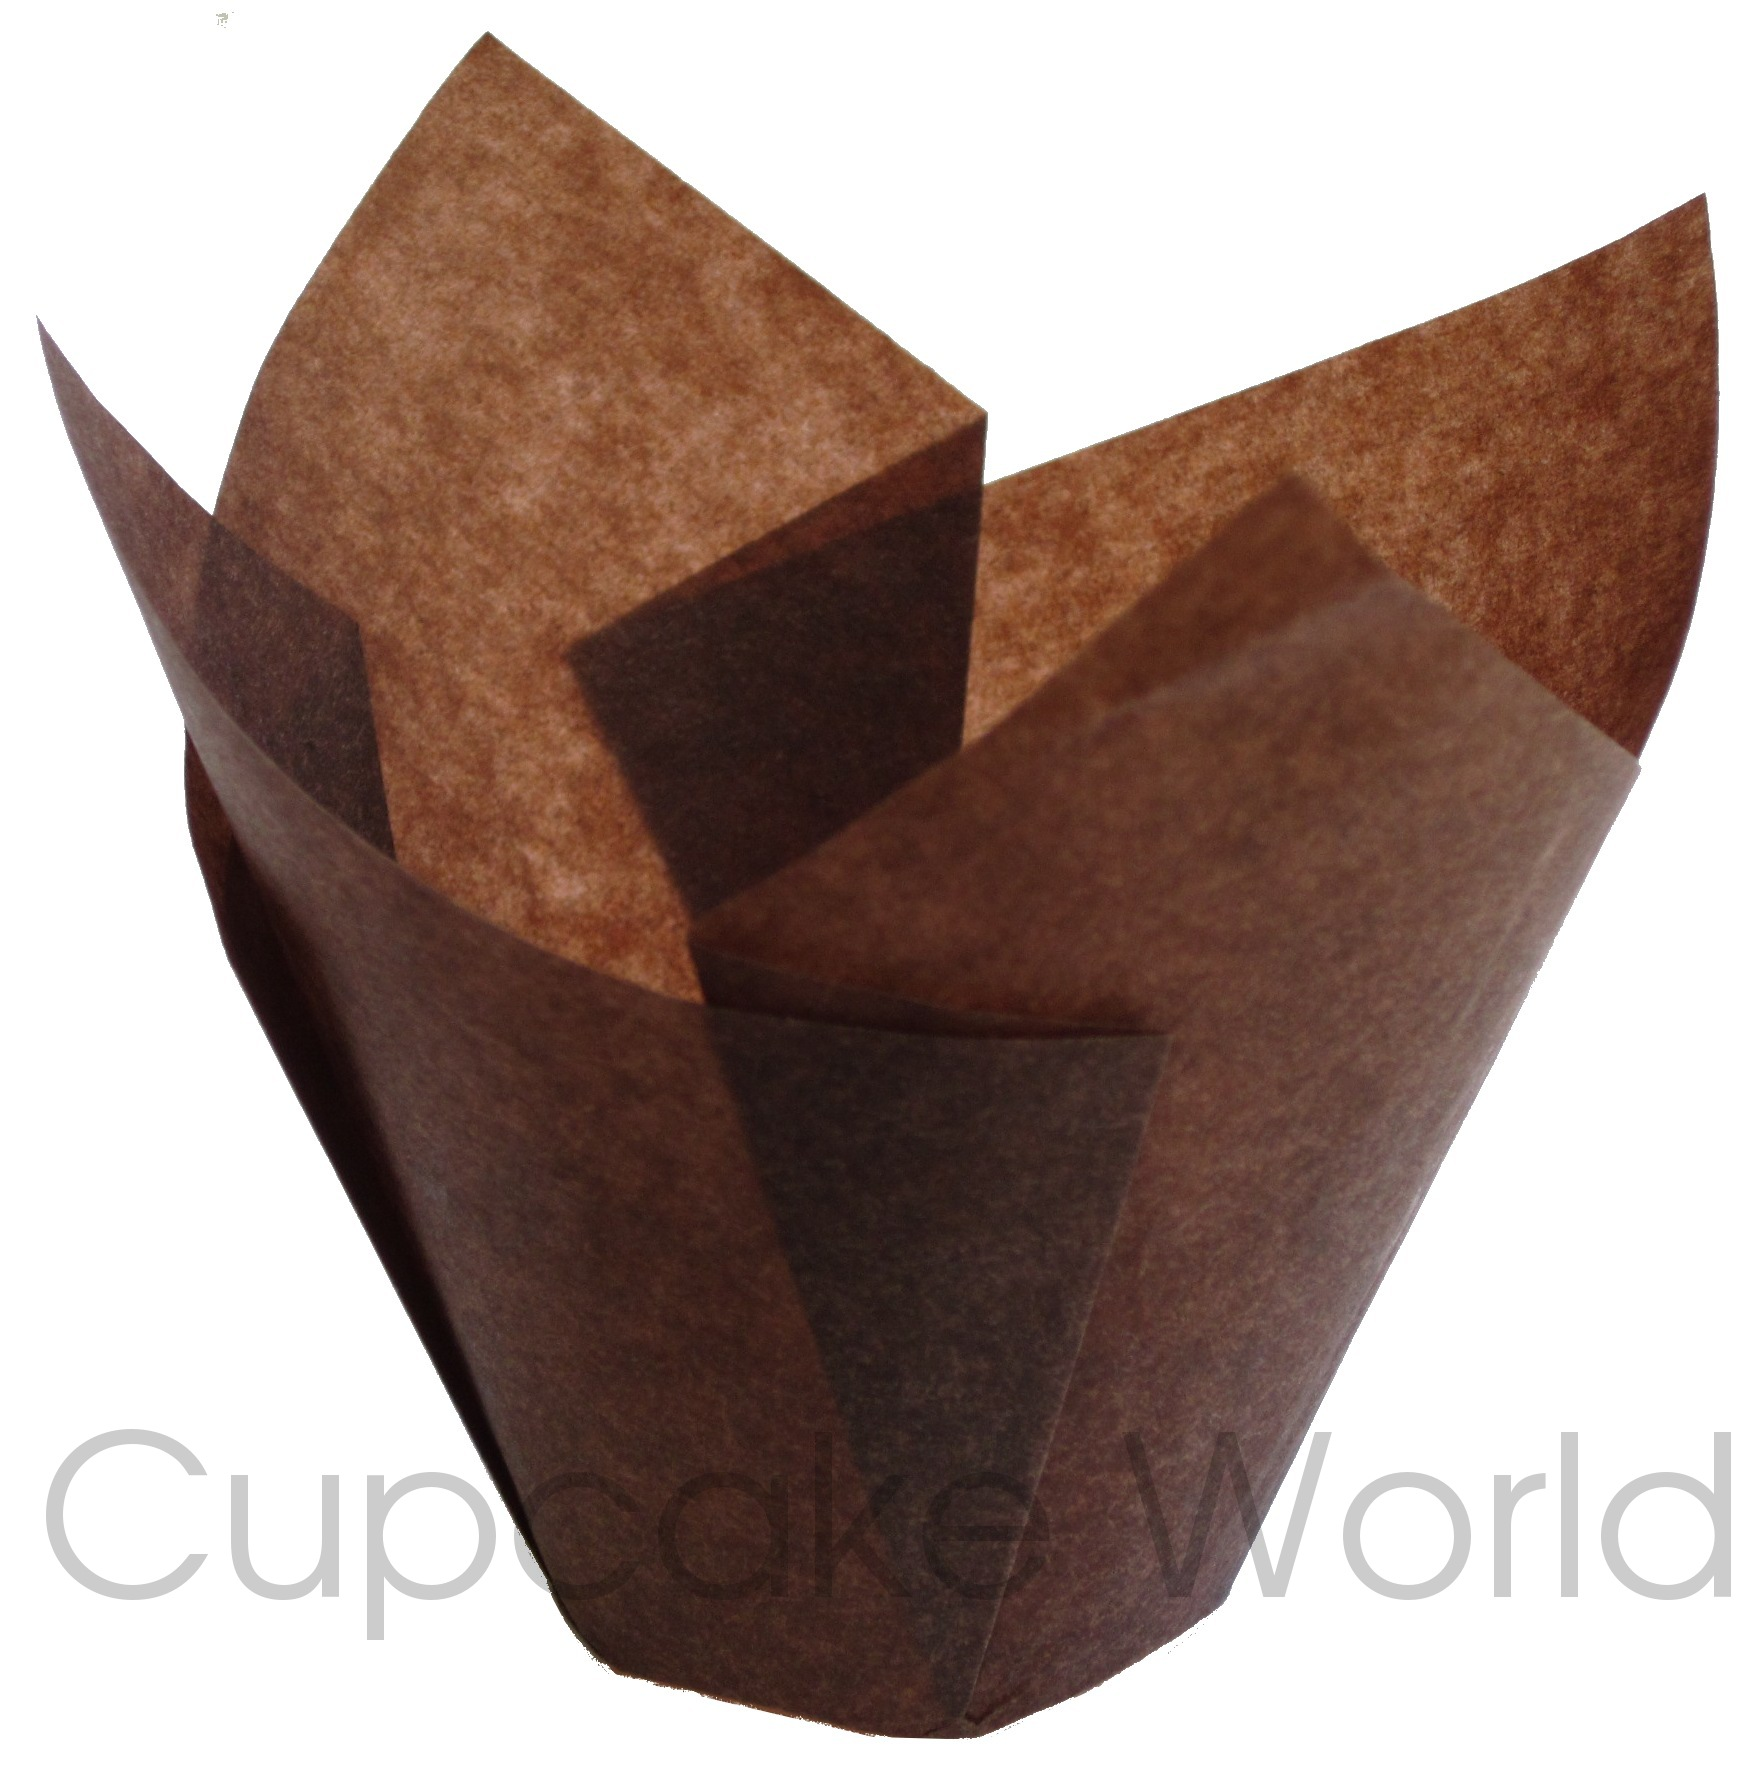 100PC CAFE STYLE BROWN PAPER CUPCAKE MUFFIN WRAPS MINI